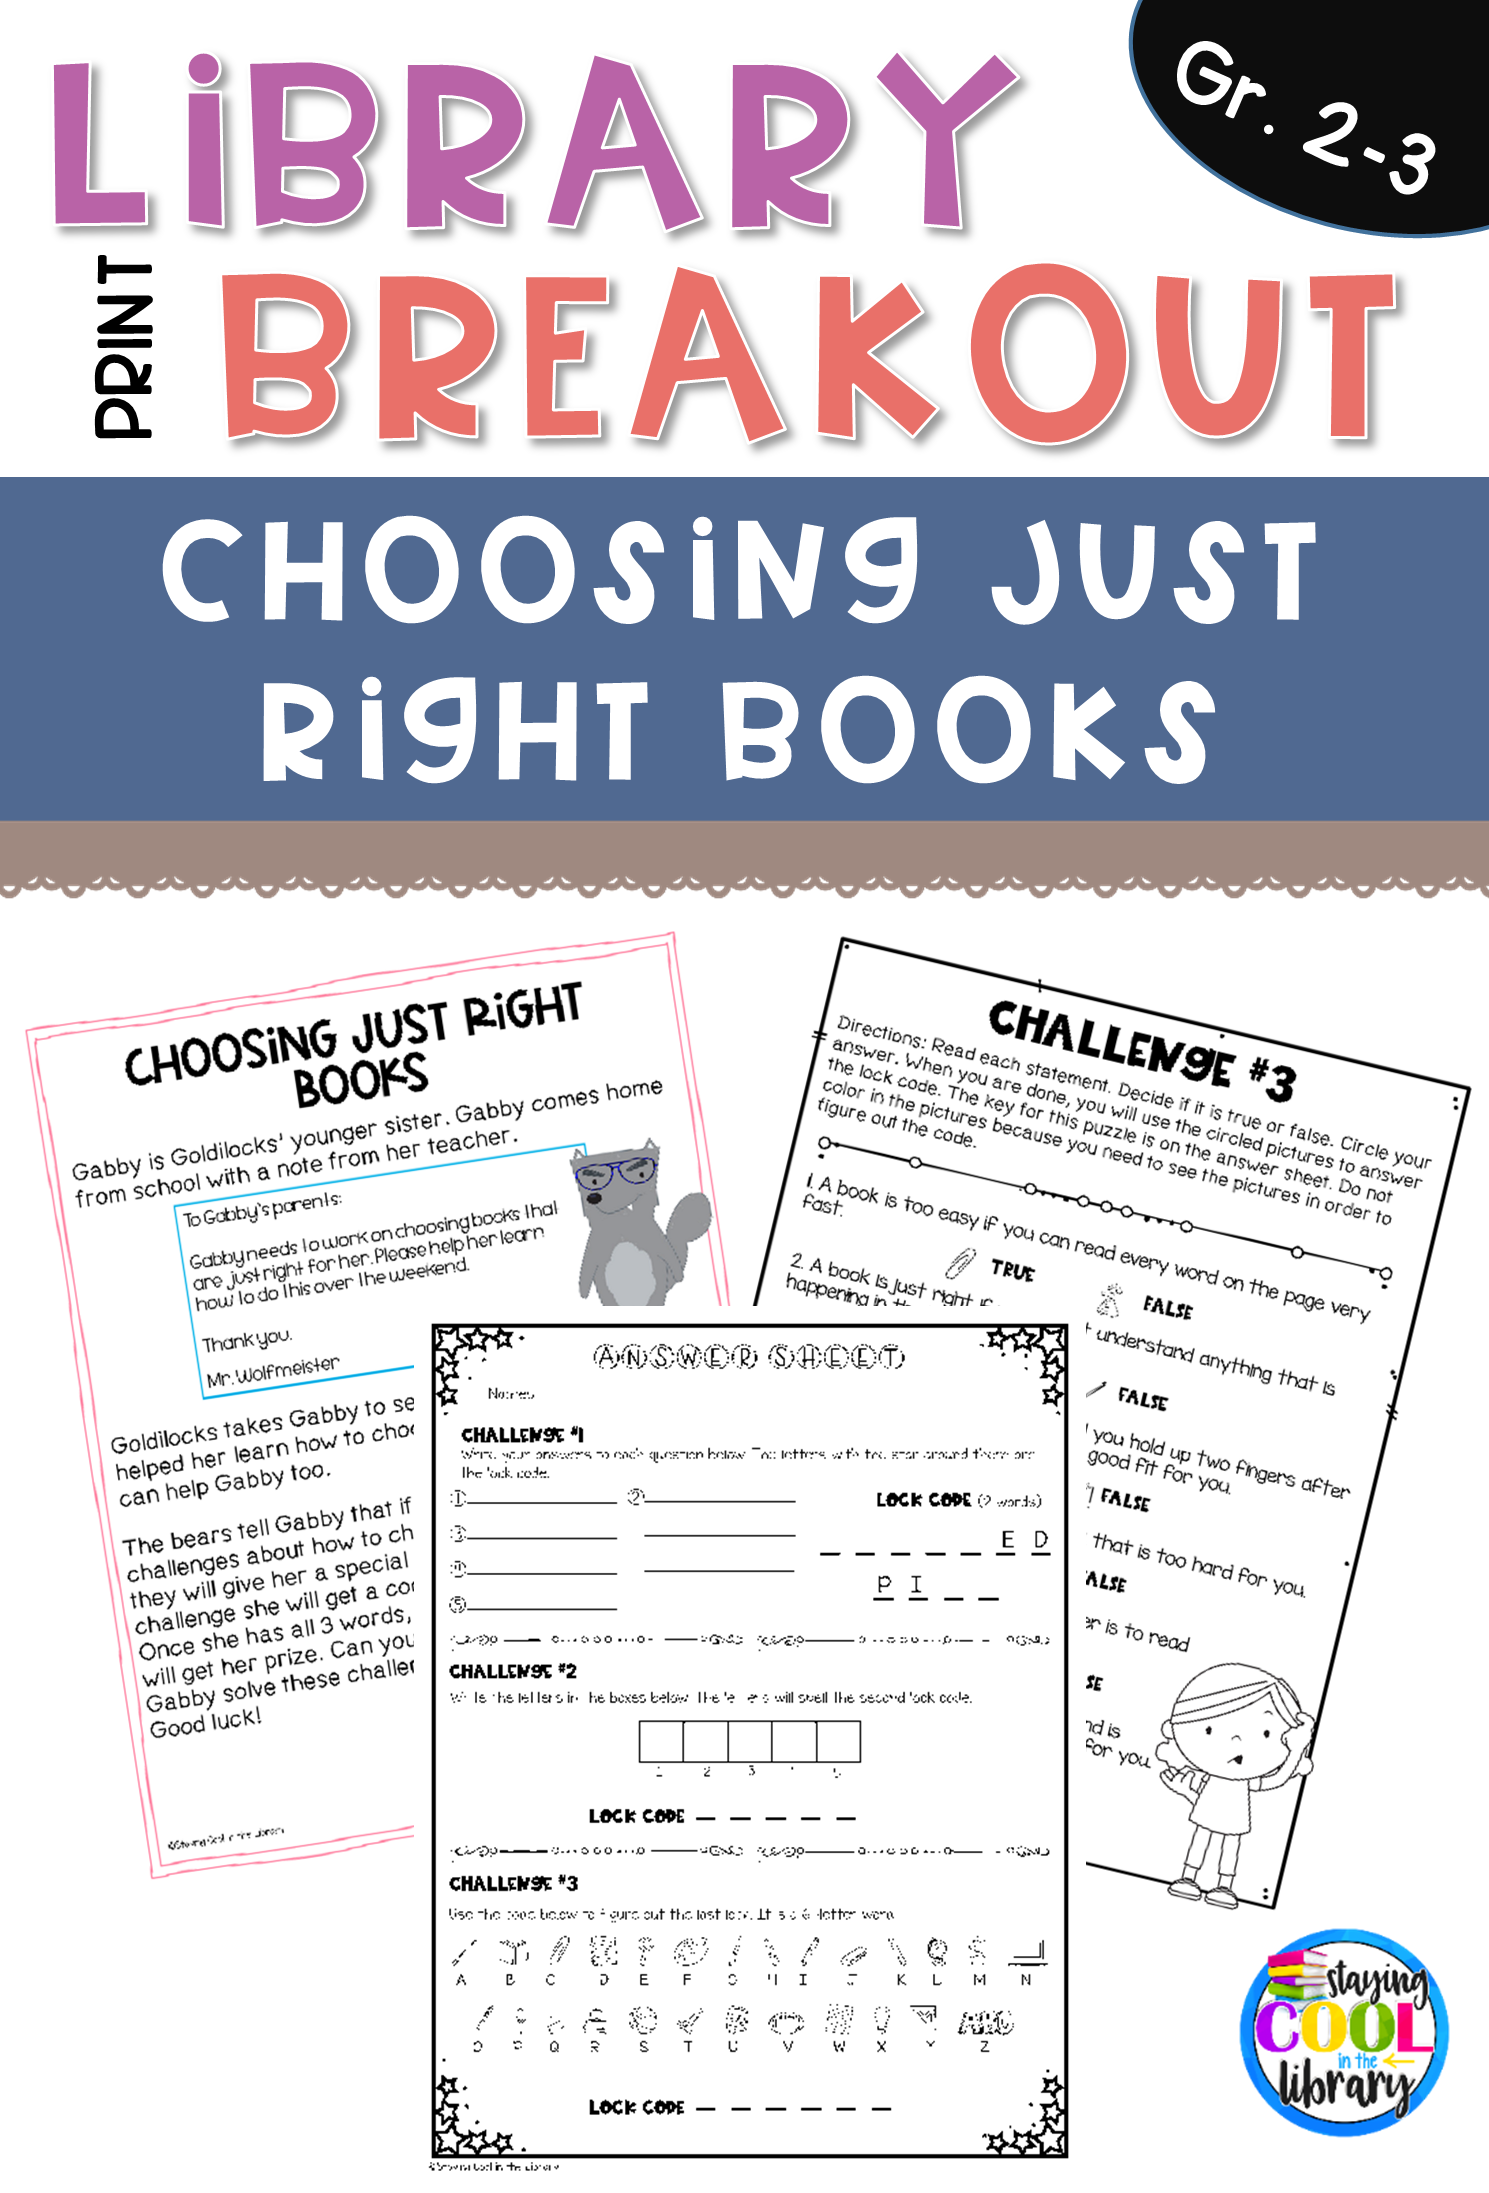 Choosing Just Right Books PRINT Breakout Just right